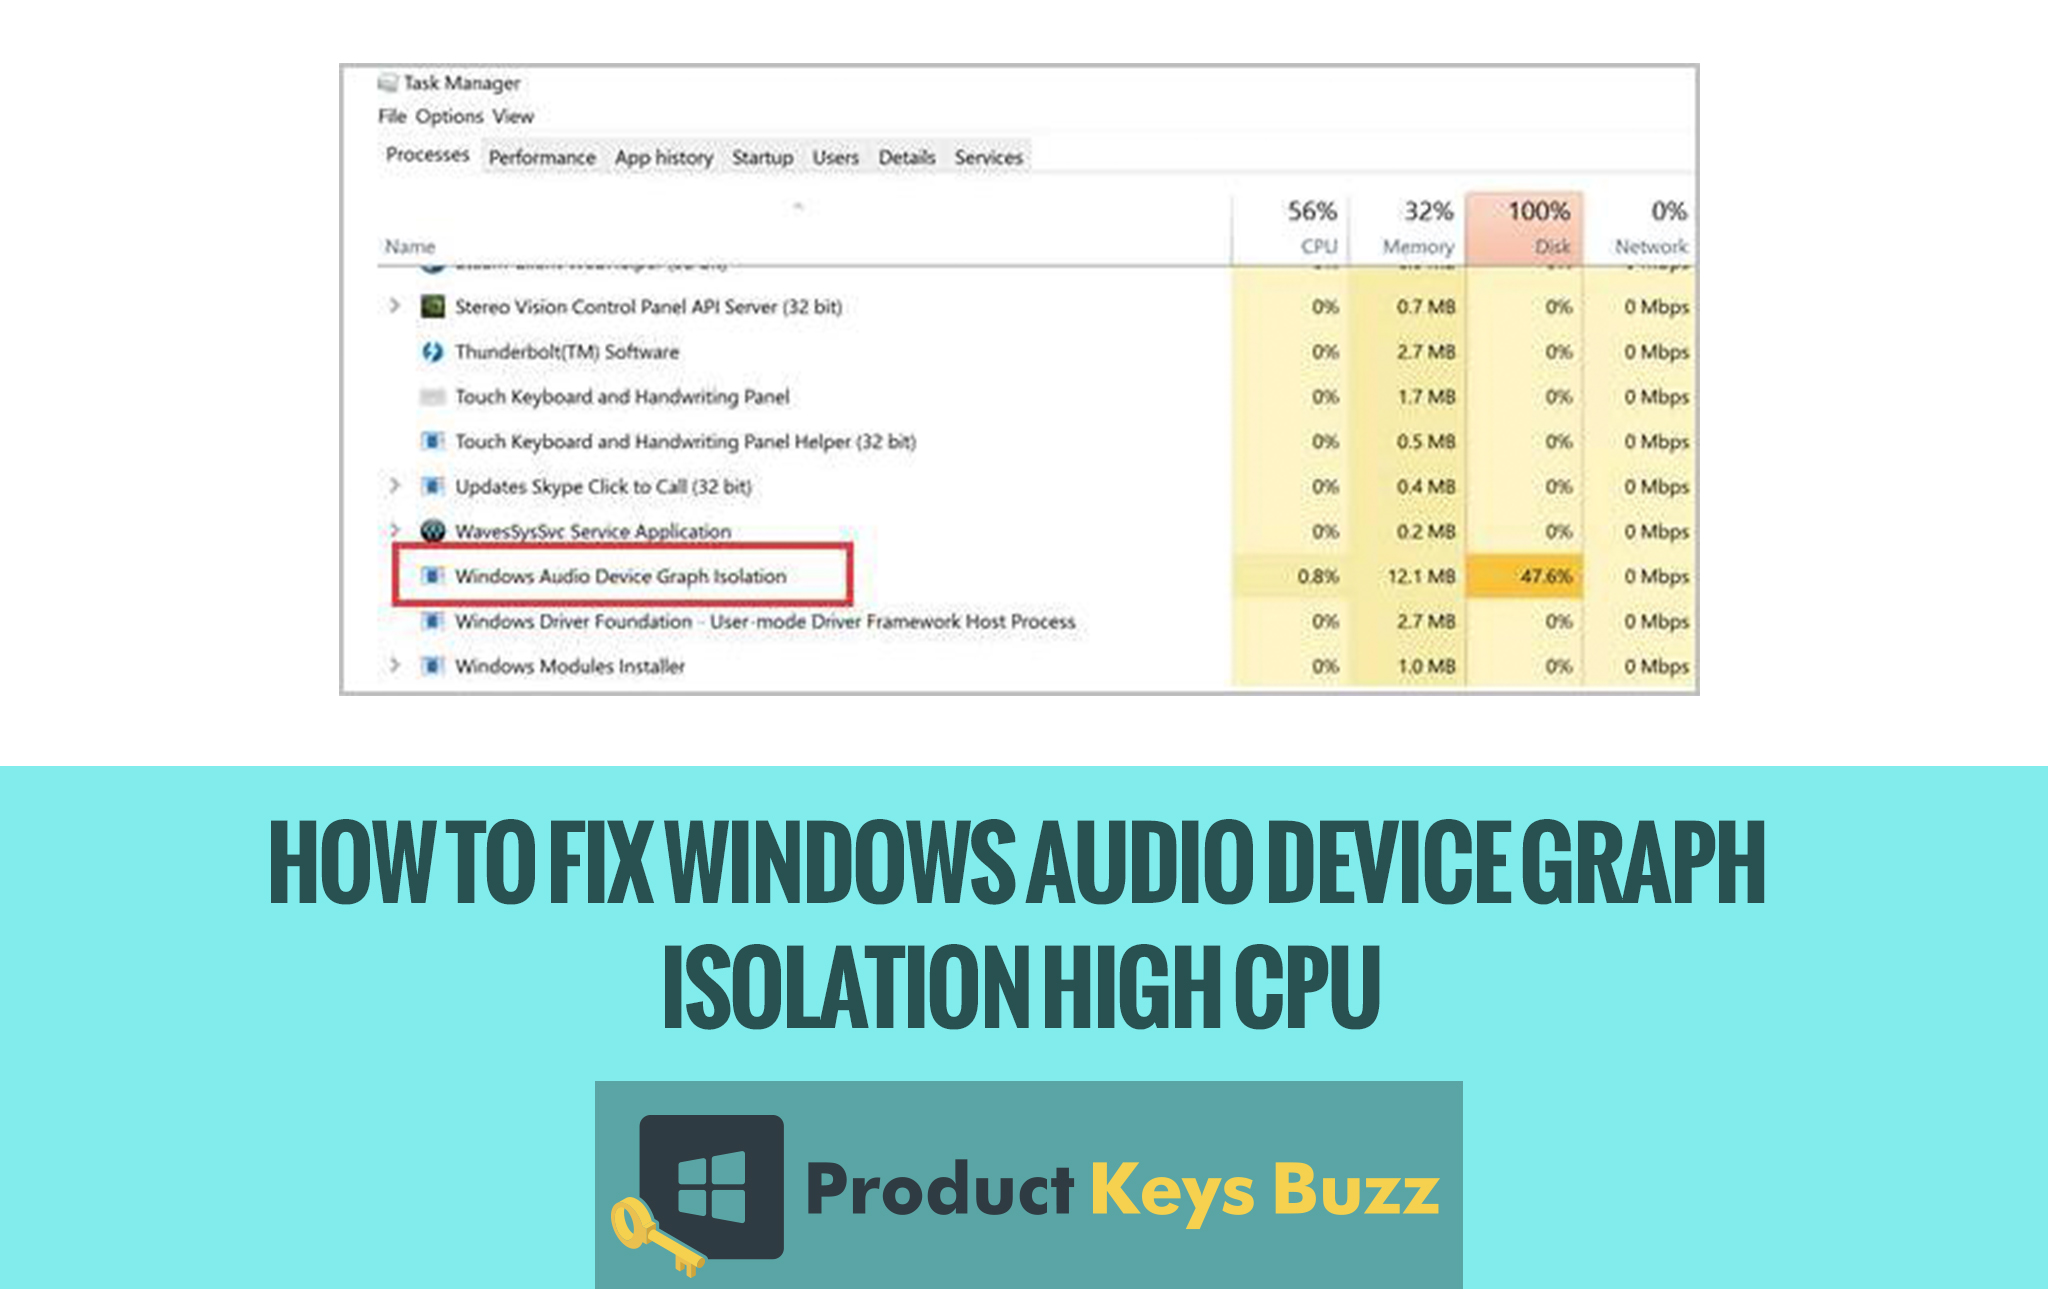 How to Fix Windows Audio Device Graph Isolation High CPU